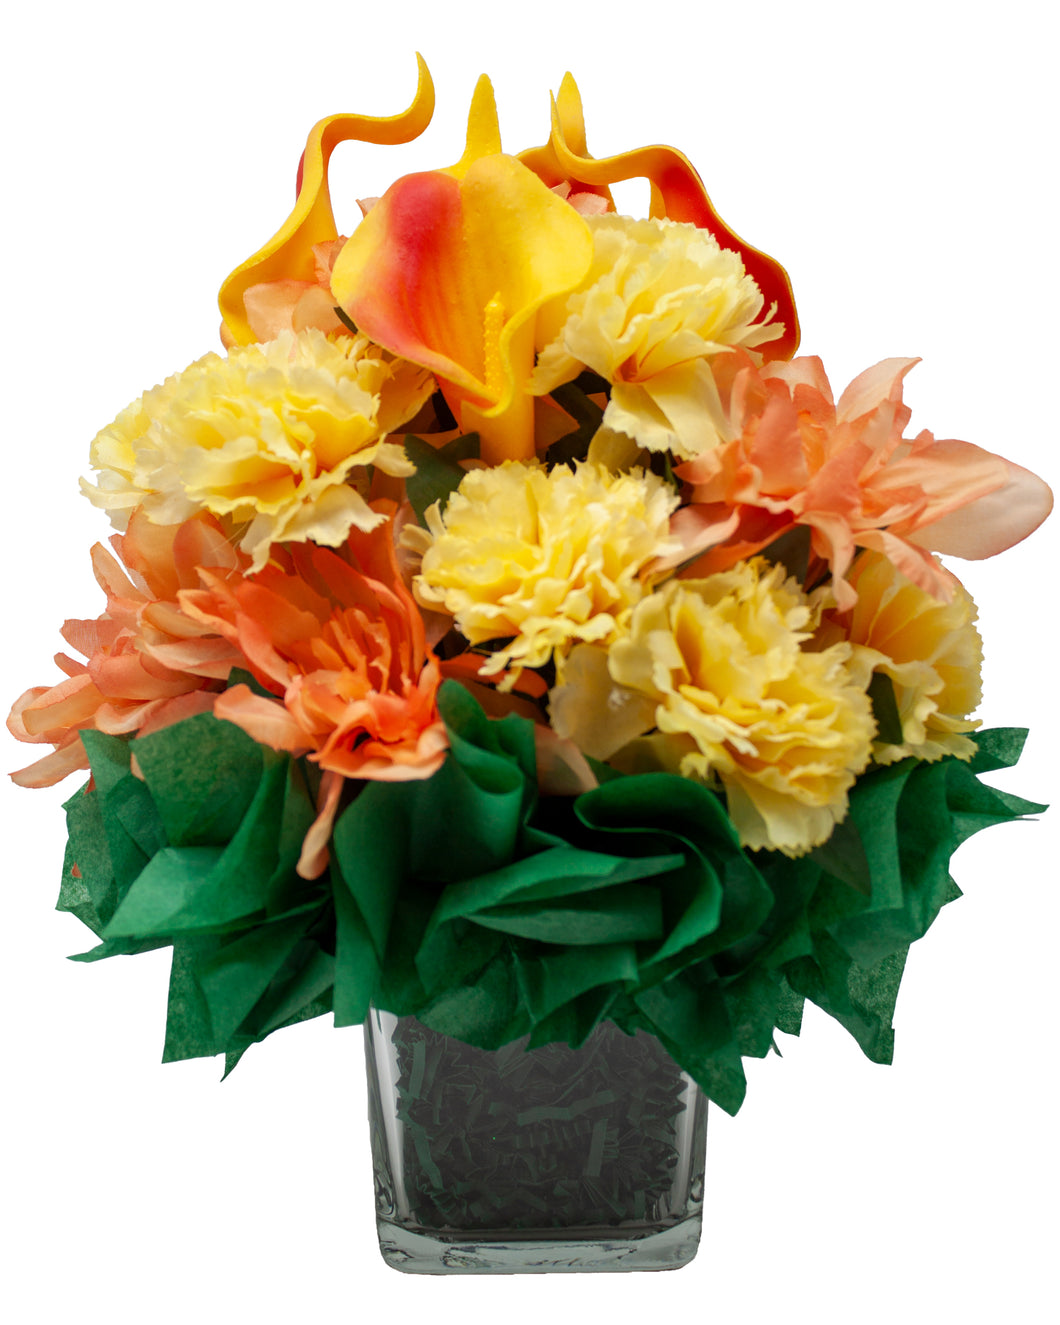 Beautiful Artificial Floral Bouquet with Calla Lilies, Carnation's and Dahlia's Arranged in a Clear Cube Glass Vase